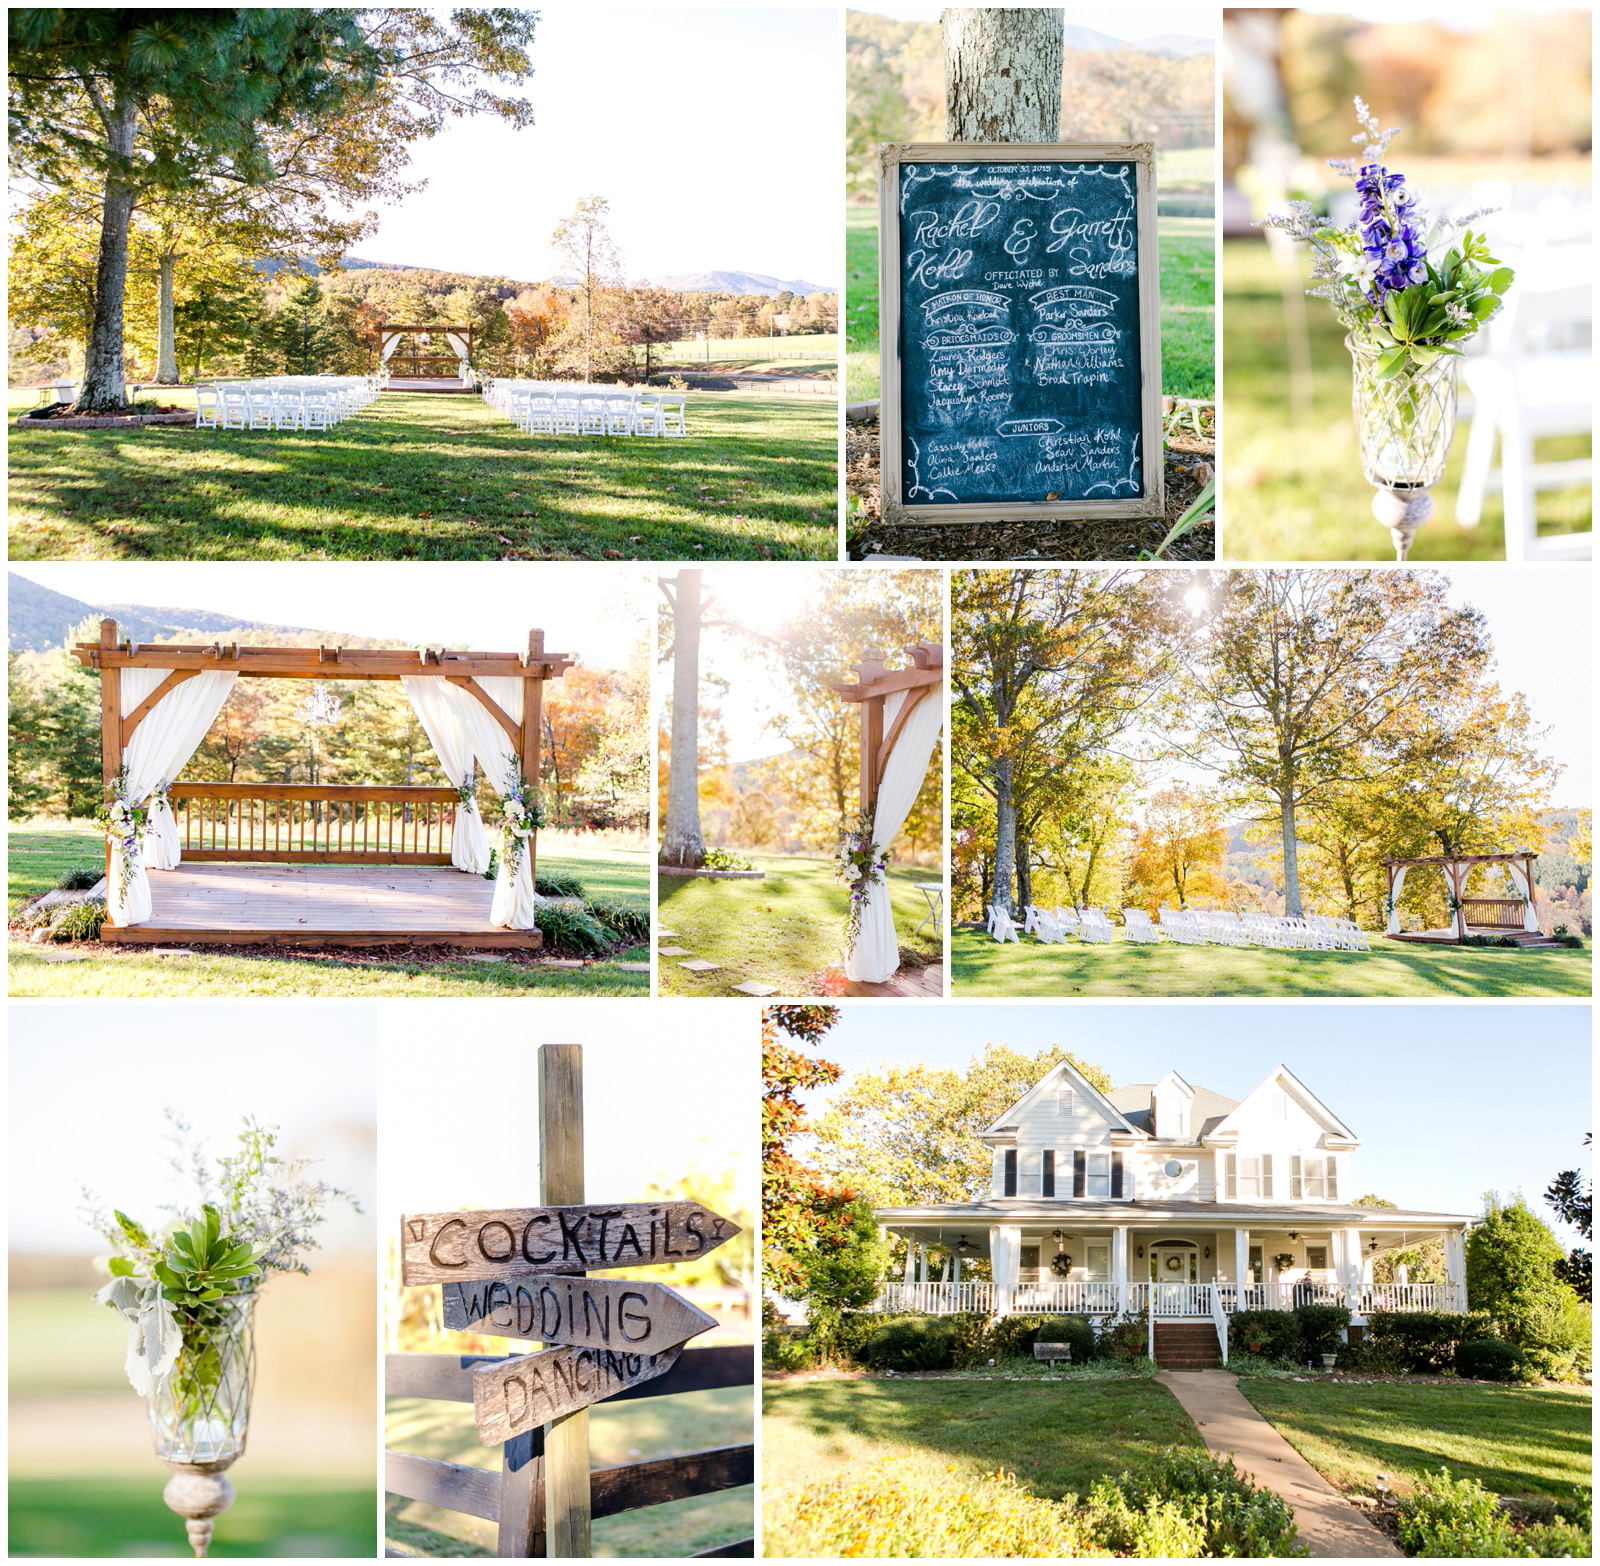 R&G_AtlantaWeddingPhotographer_WhiteOaksBarn_0025